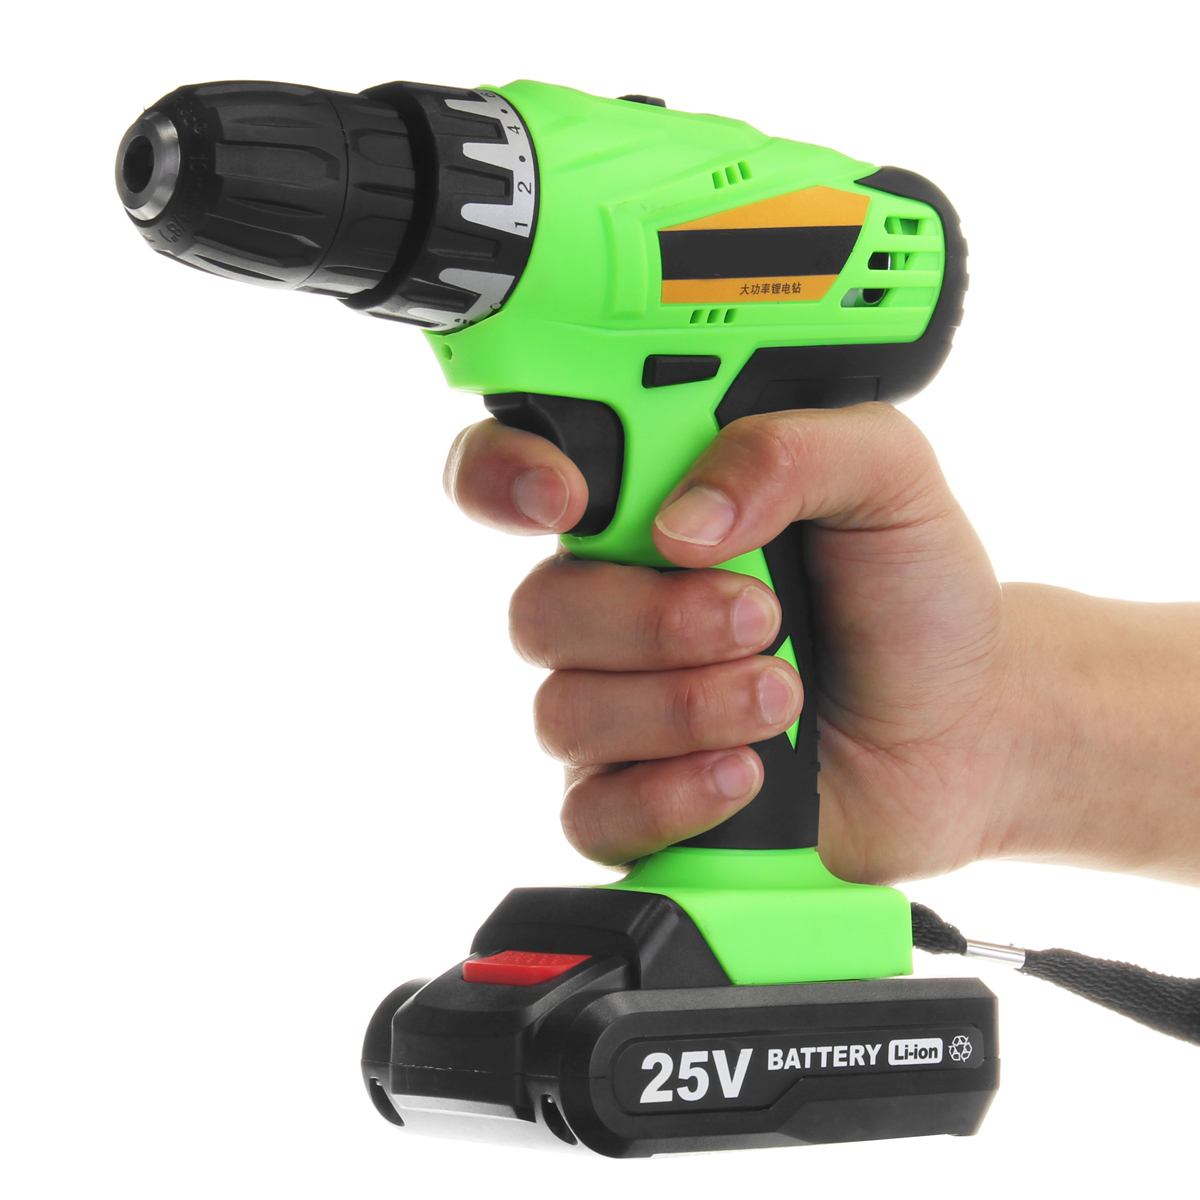 Best 25V Cordless Power Drill 1.3A Output 2 Lithium-Ion Battery Rechargeable Electric Screwdriver Kit Repair Tool With ChargerBest 25V Cordless Power Drill 1.3A Output 2 Lithium-Ion Battery Rechargeable Electric Screwdriver Kit Repair Tool With Charger